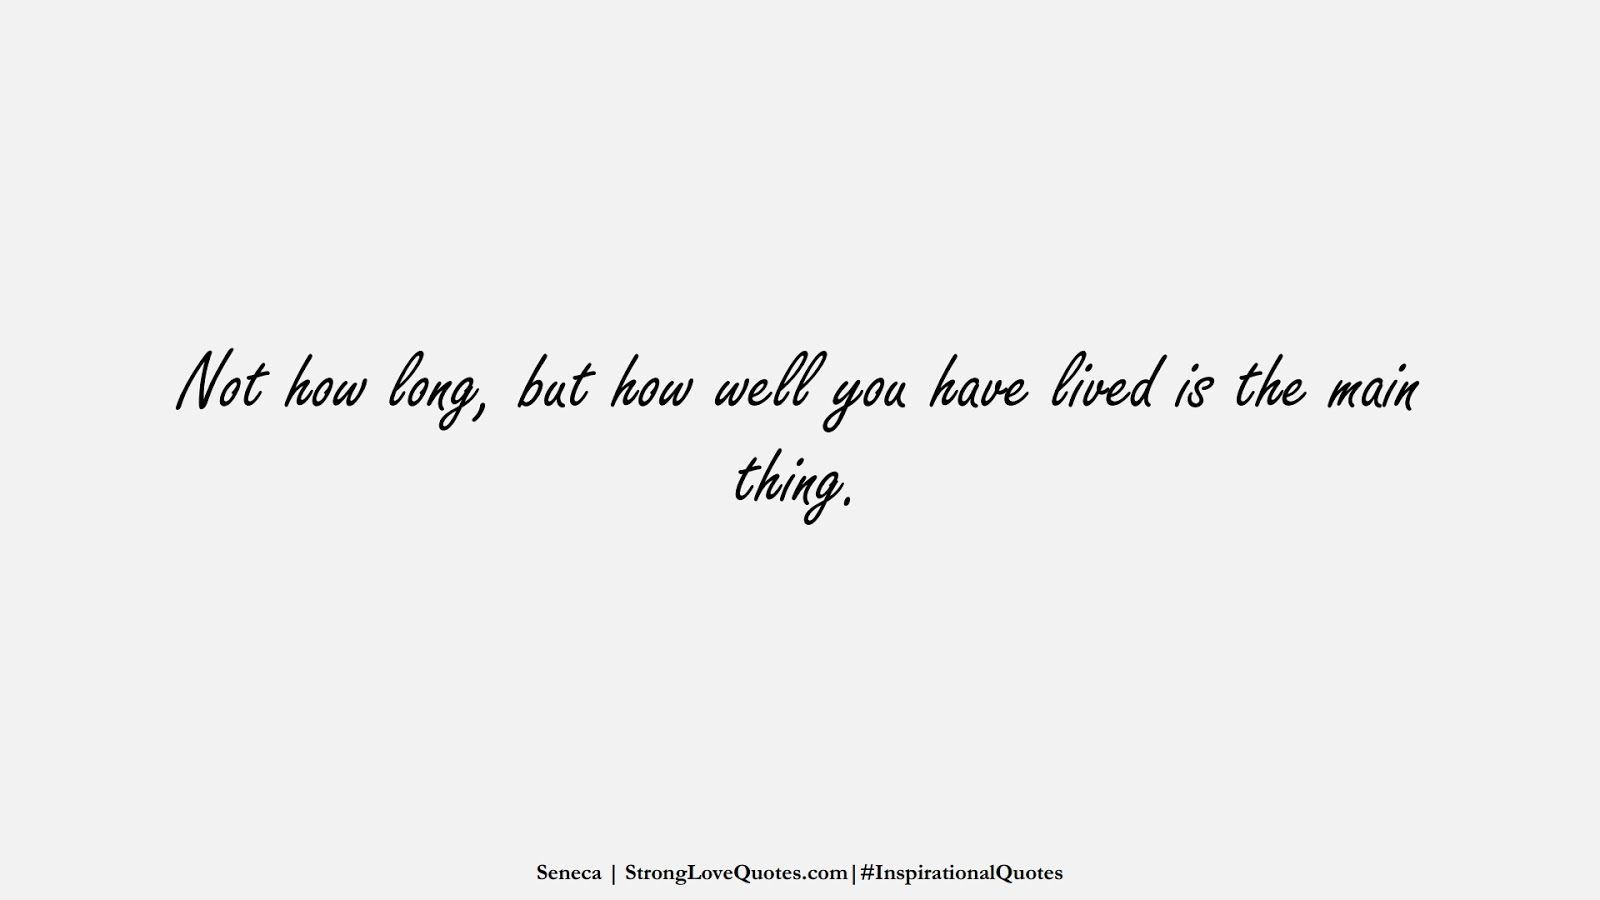 Not how long, but how well you have lived is the main thing. (Seneca);  #InspirationalQuotes